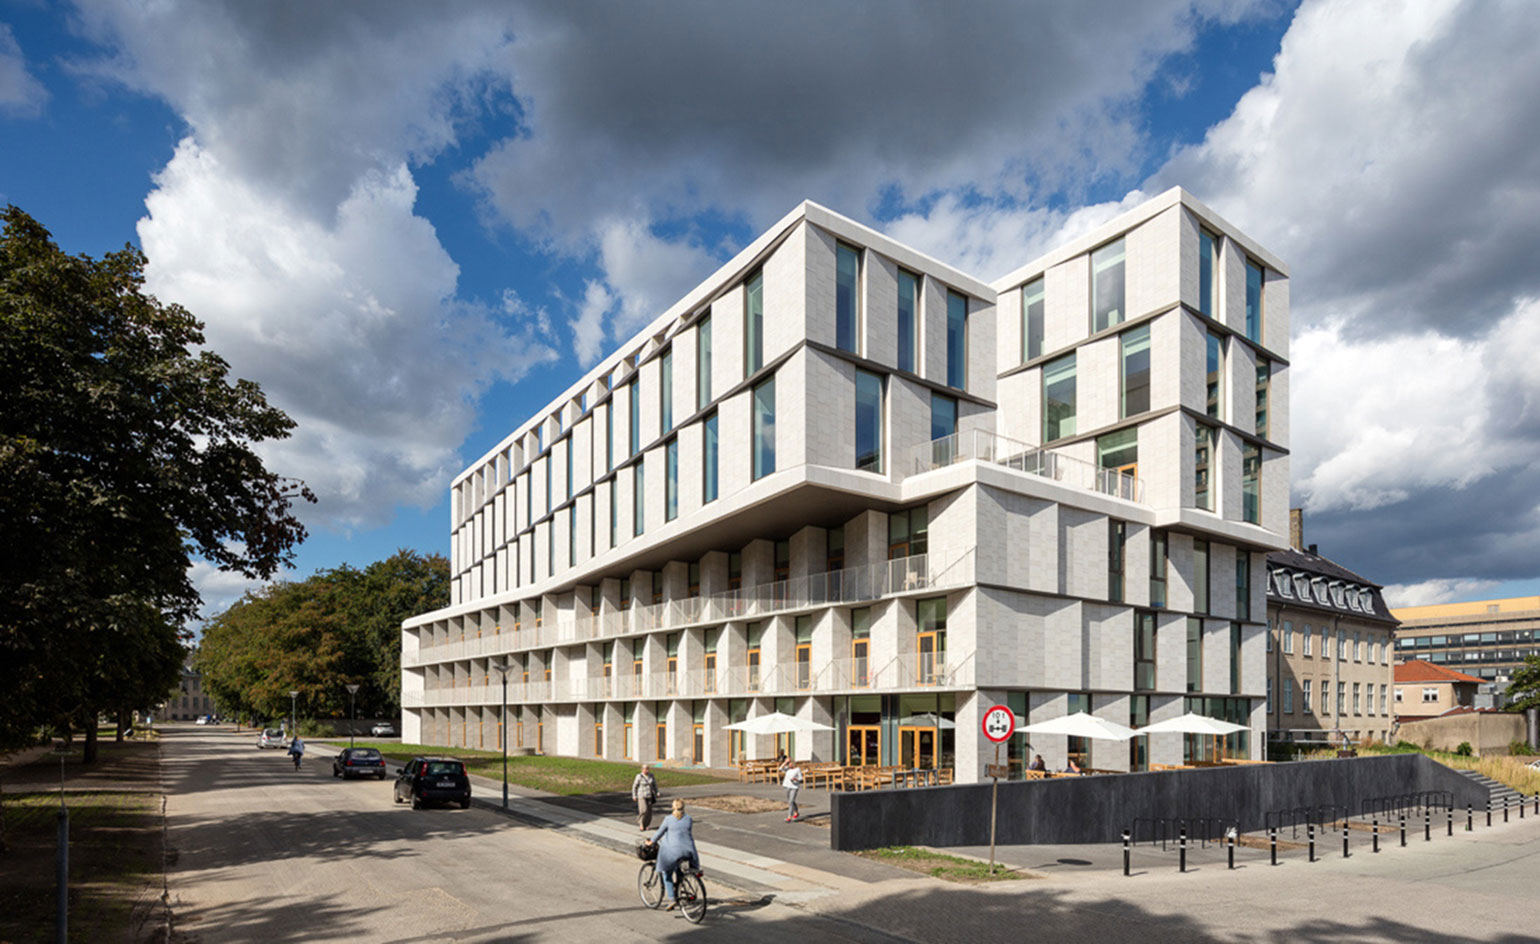 Health care news 3xn 39 s patient hotel arrives in copenhagen for Design hotel copenhagen